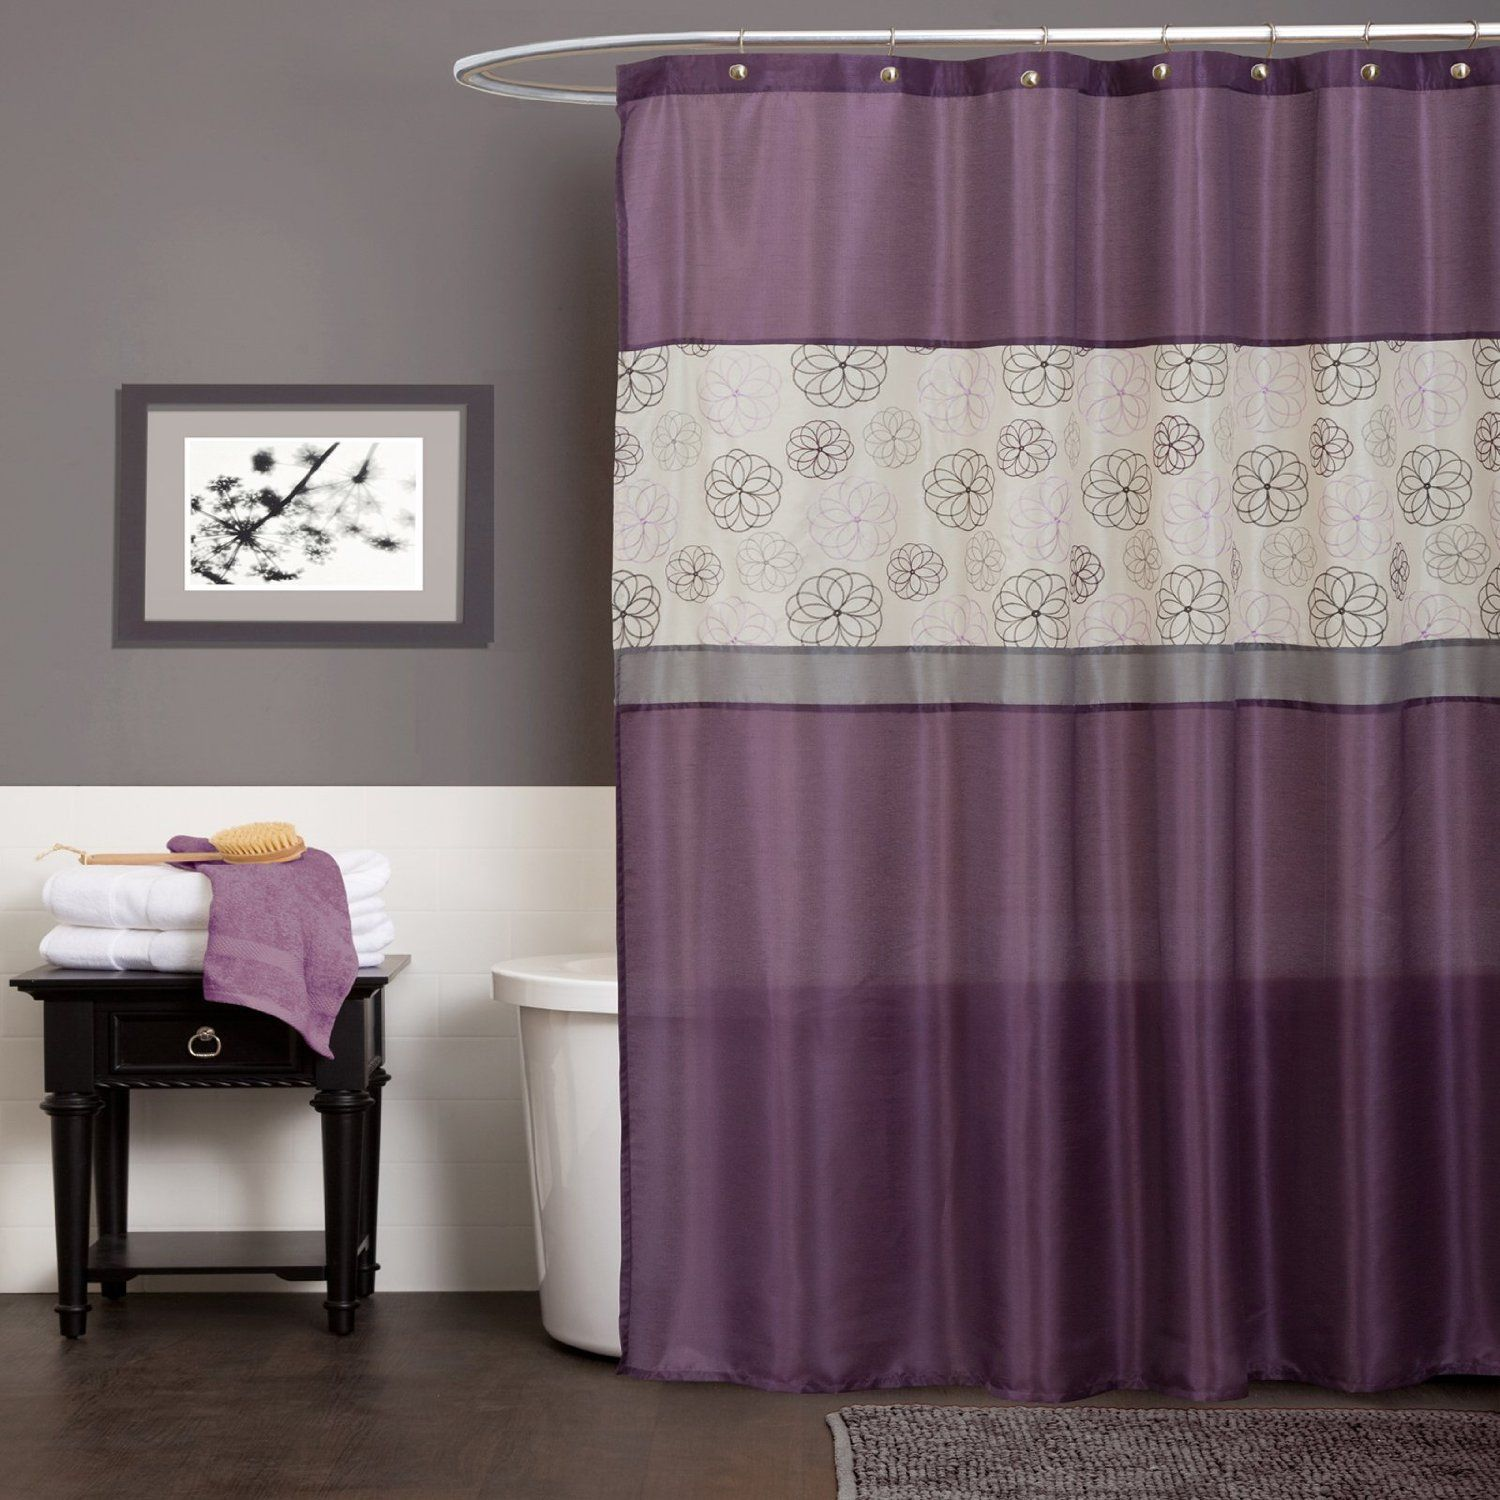 lush decor covina purple shower curtain | curtains - from amazon